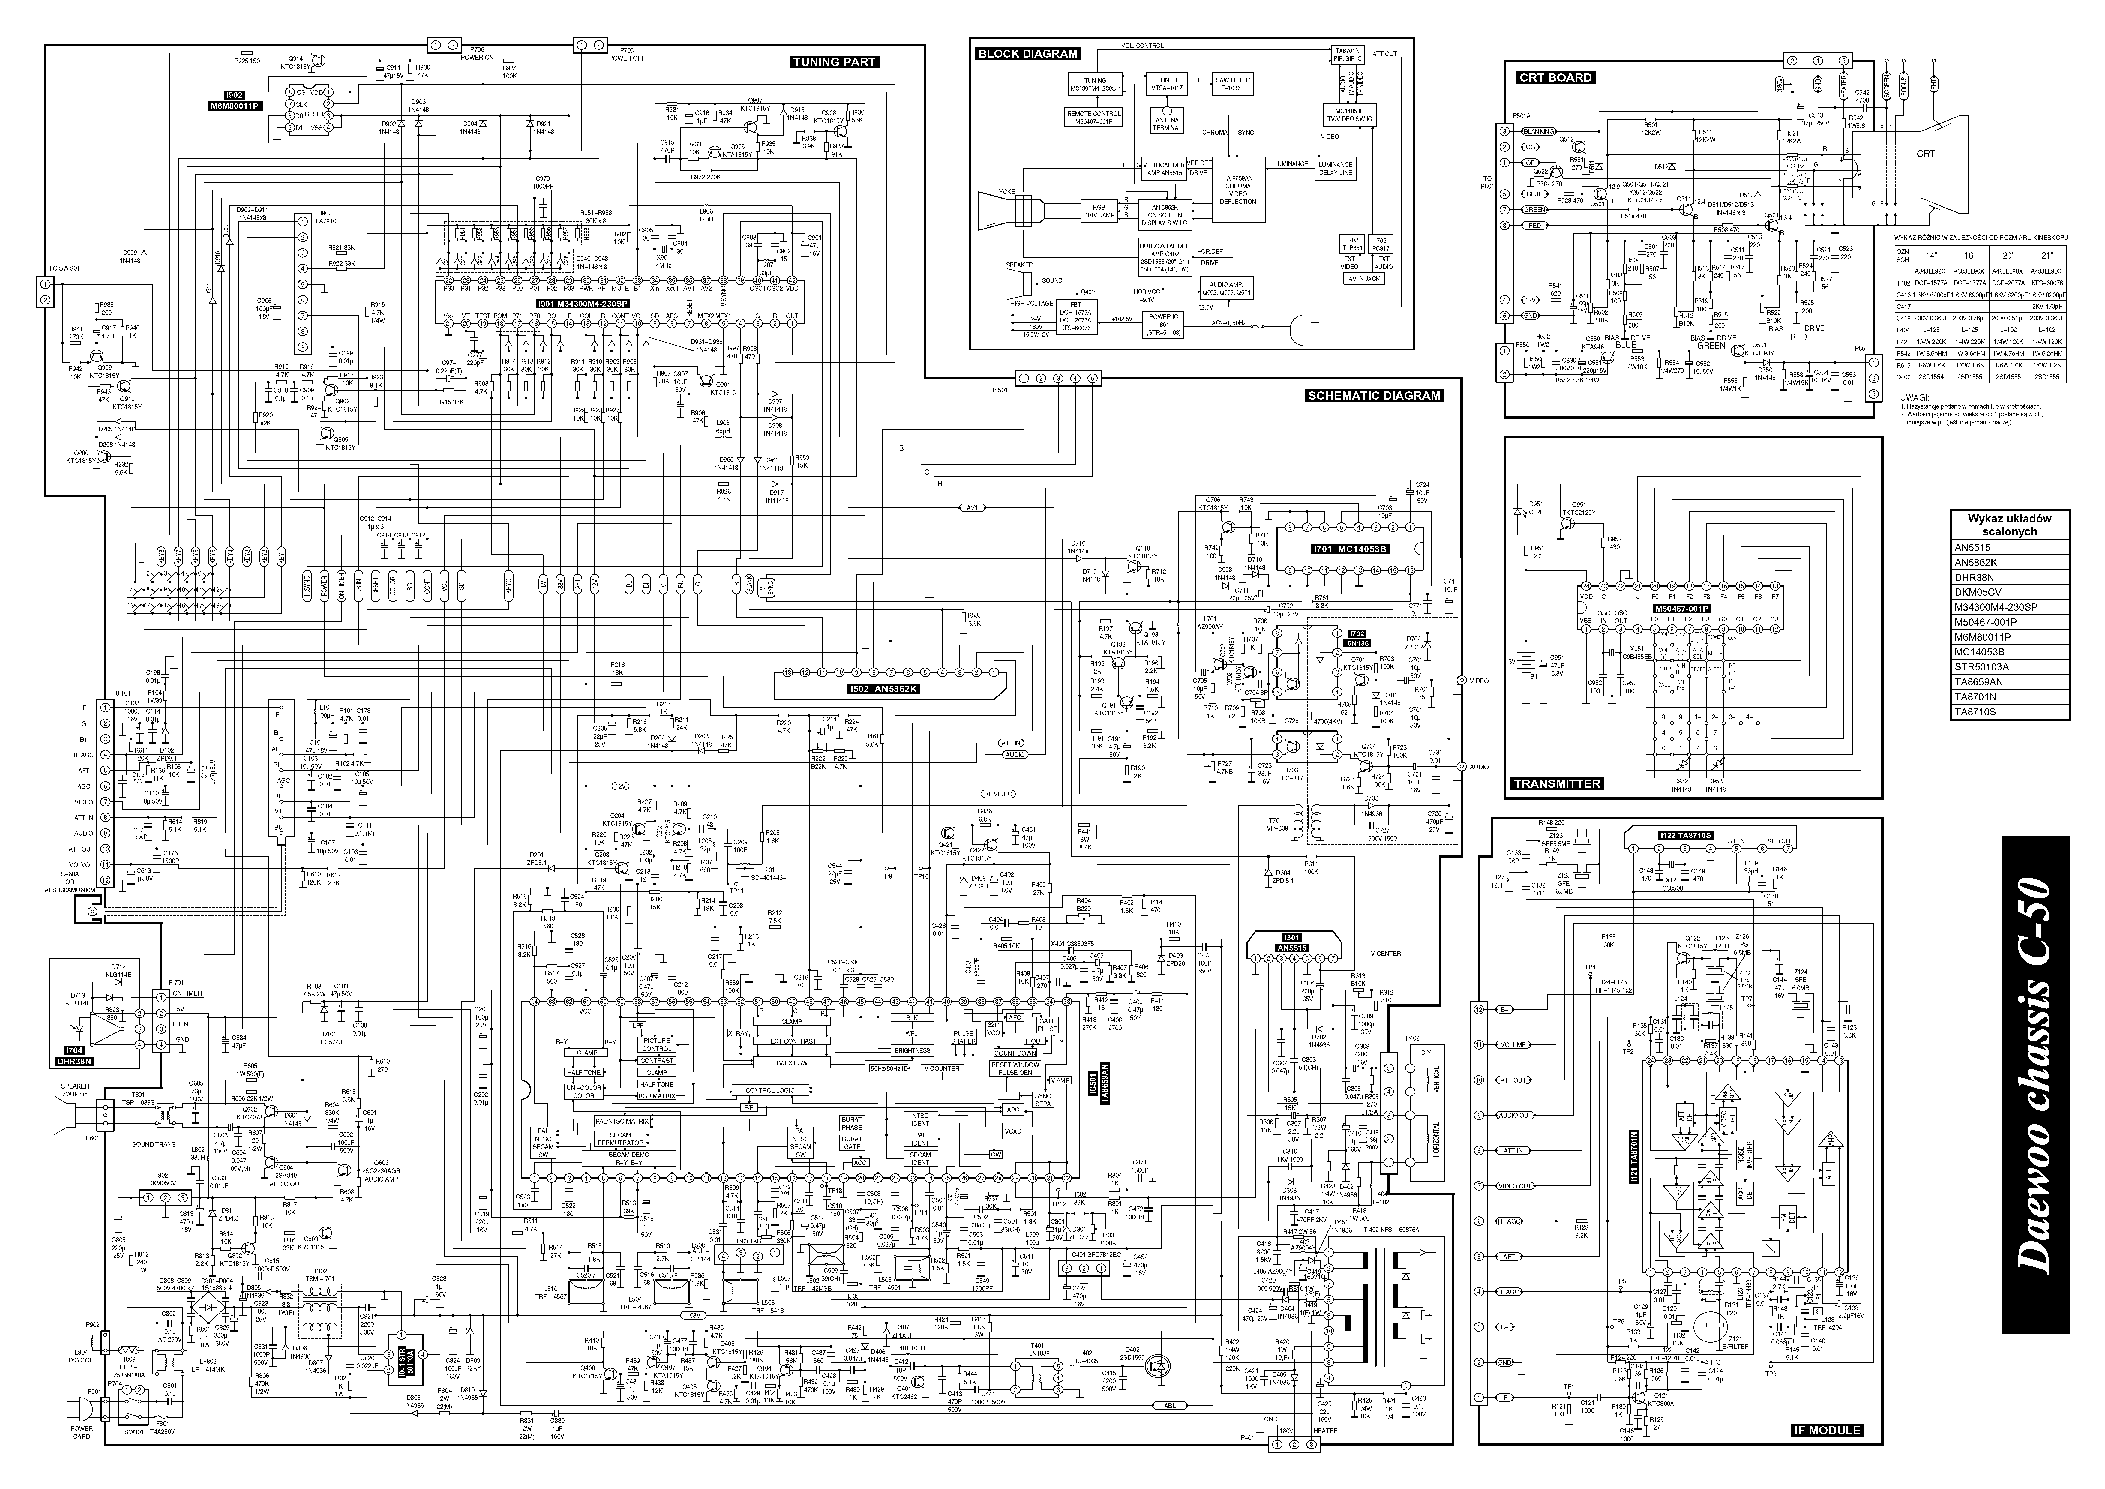 DAEWOO CHASSIS C50 DMQ-2058 SCH Service Manual download